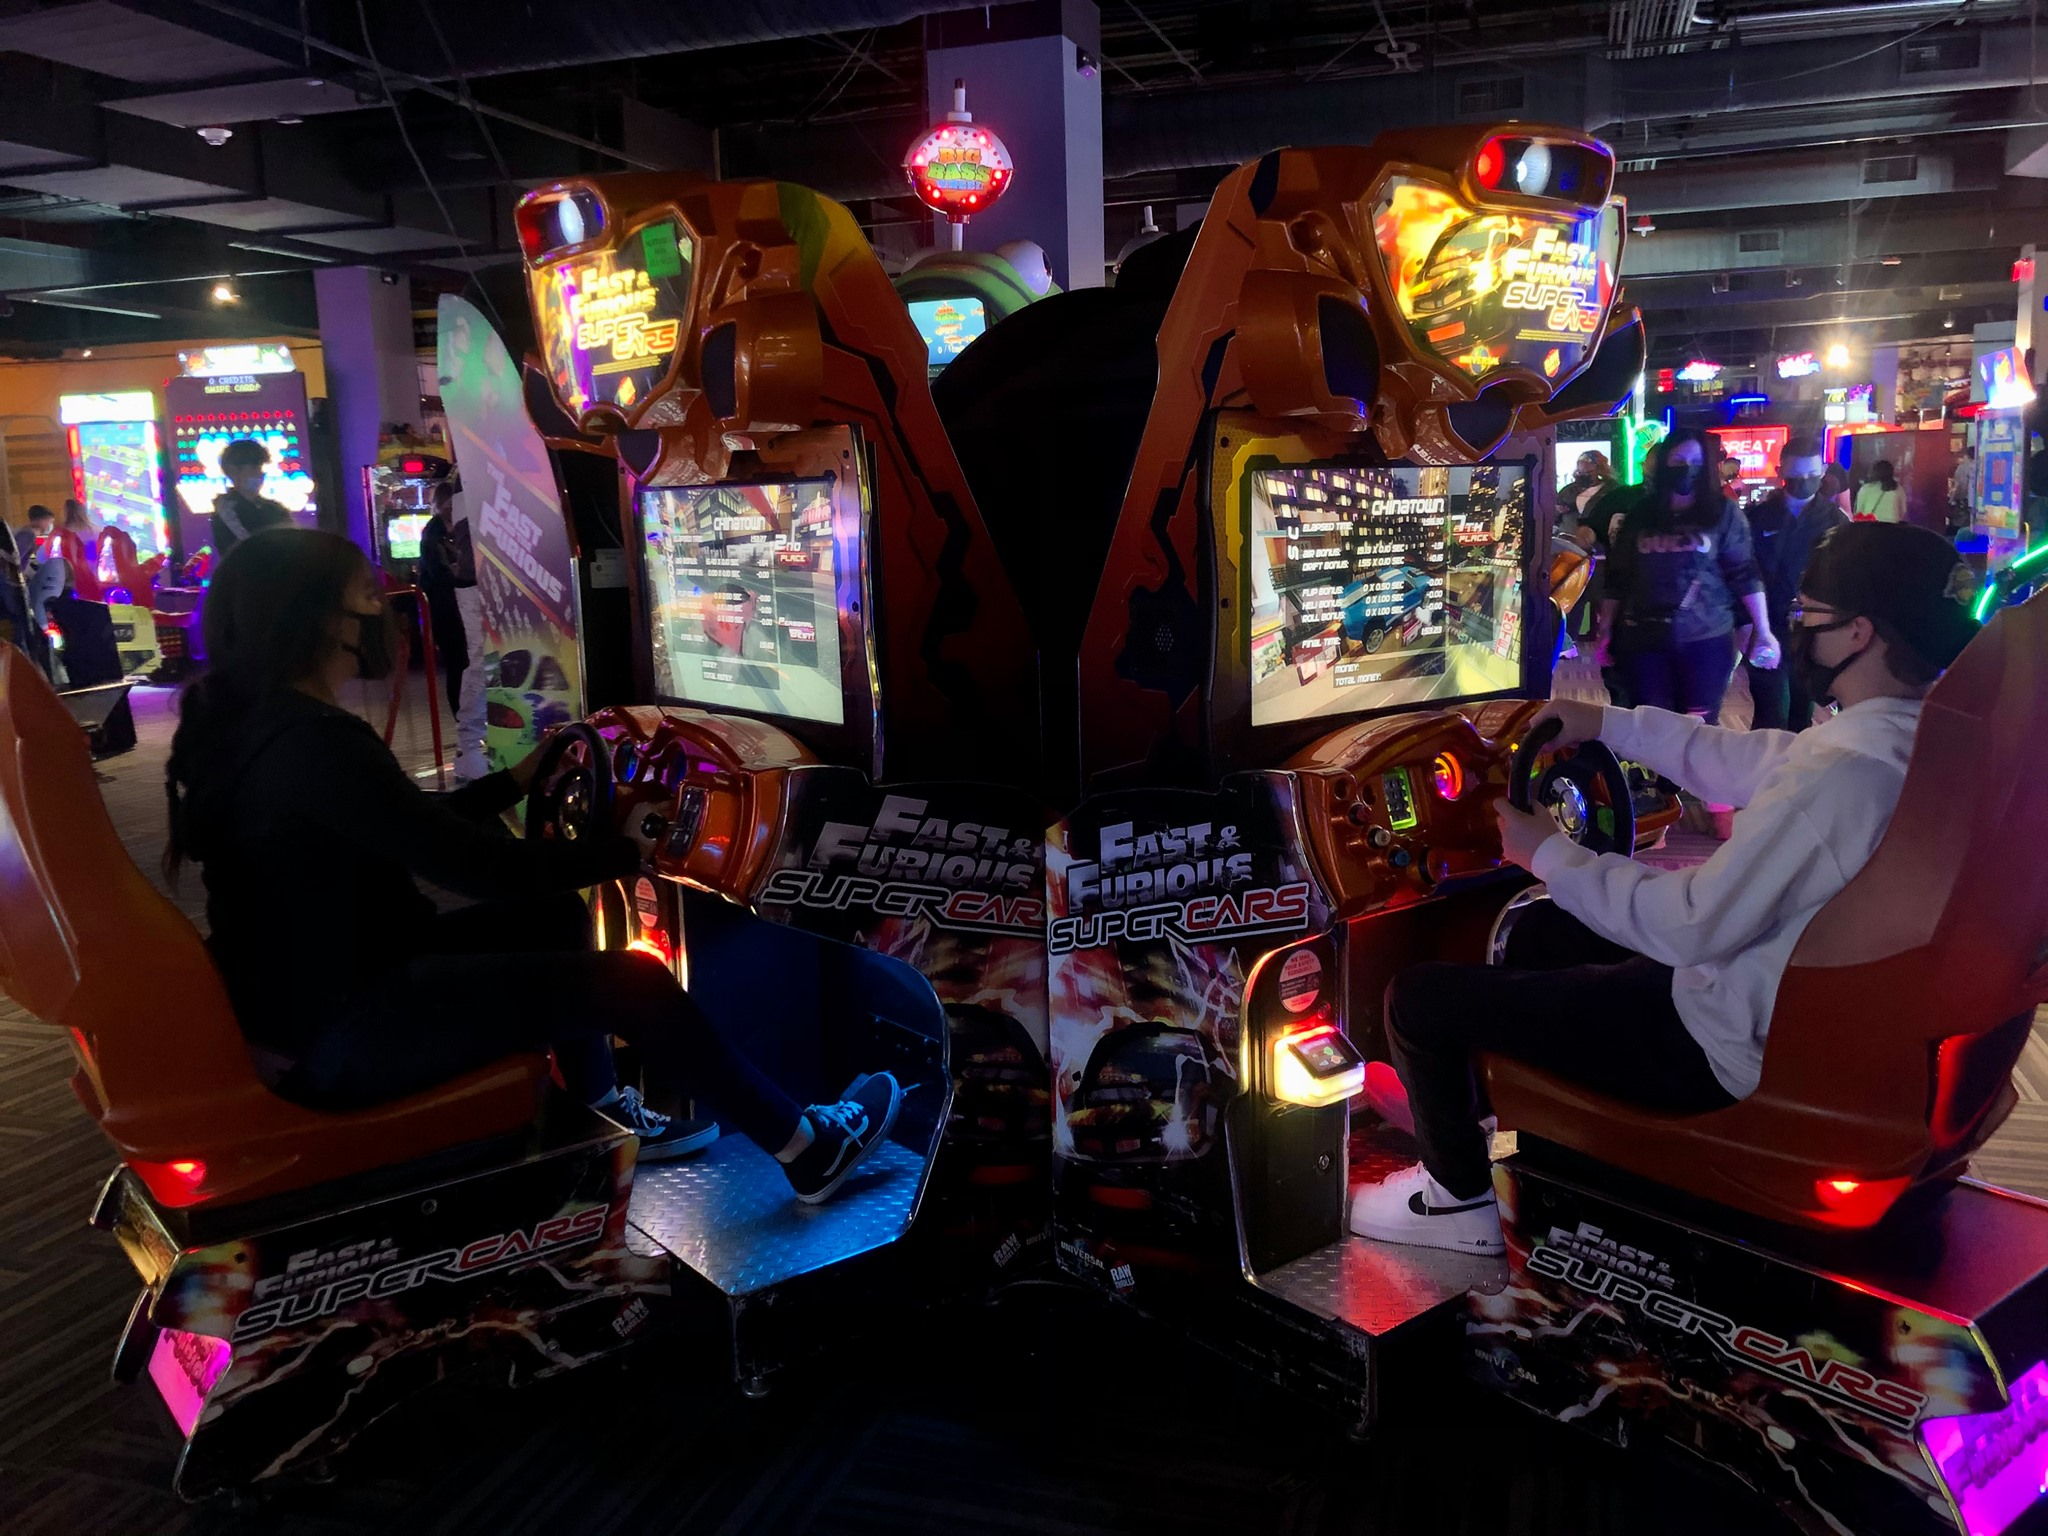 Gamers of all ages can play arcade games in GameWorks — Seattle